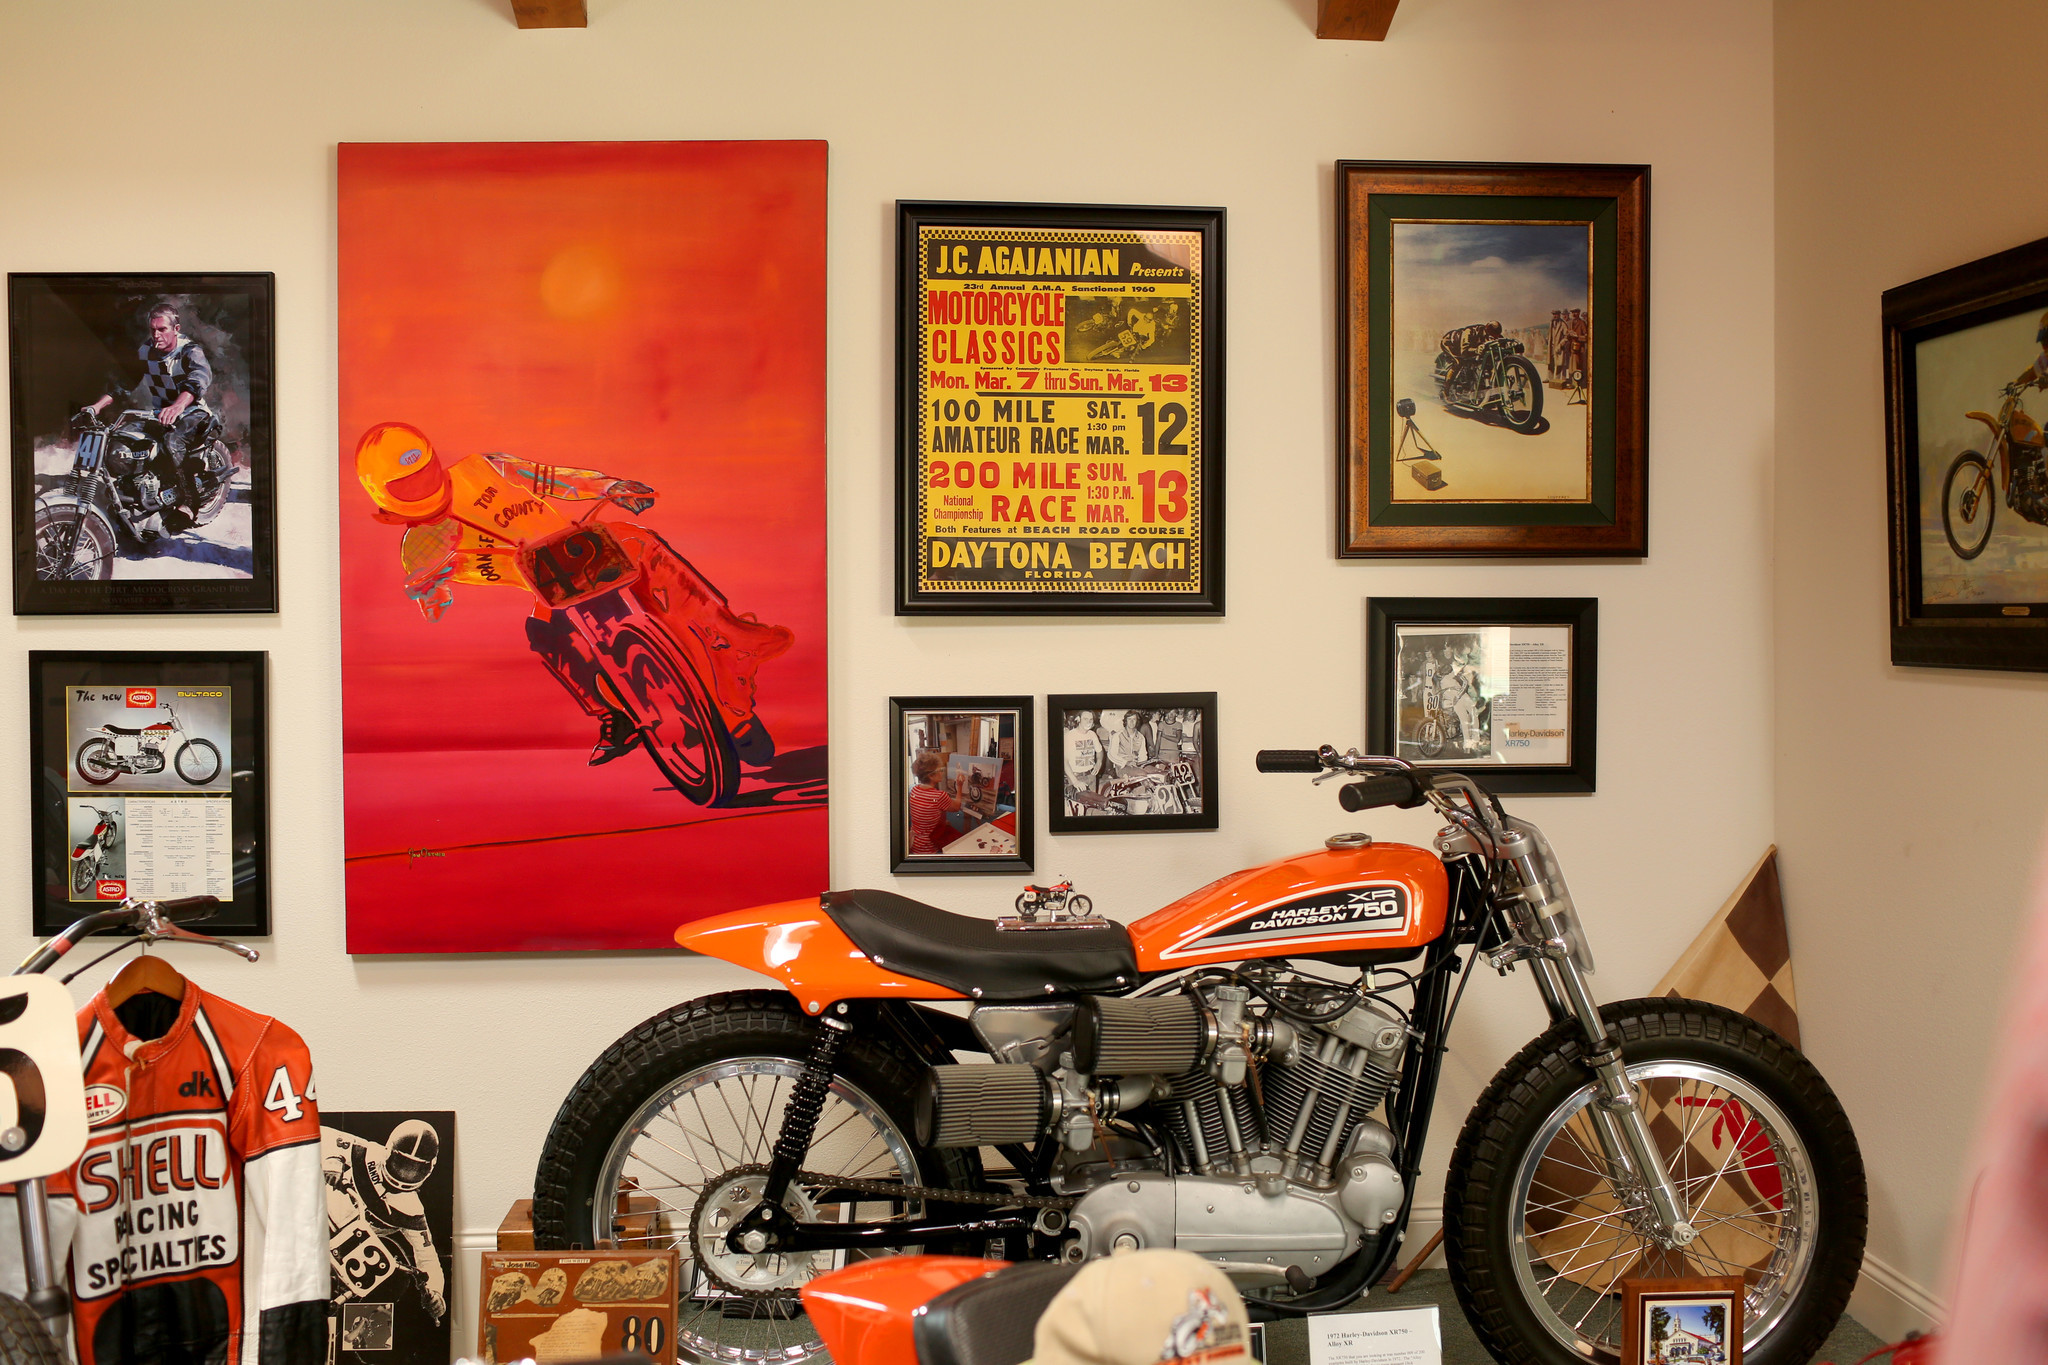 Though the museum is dedicated to motocross, there's a special room for flat track motorcycles, which White raced as a young man.